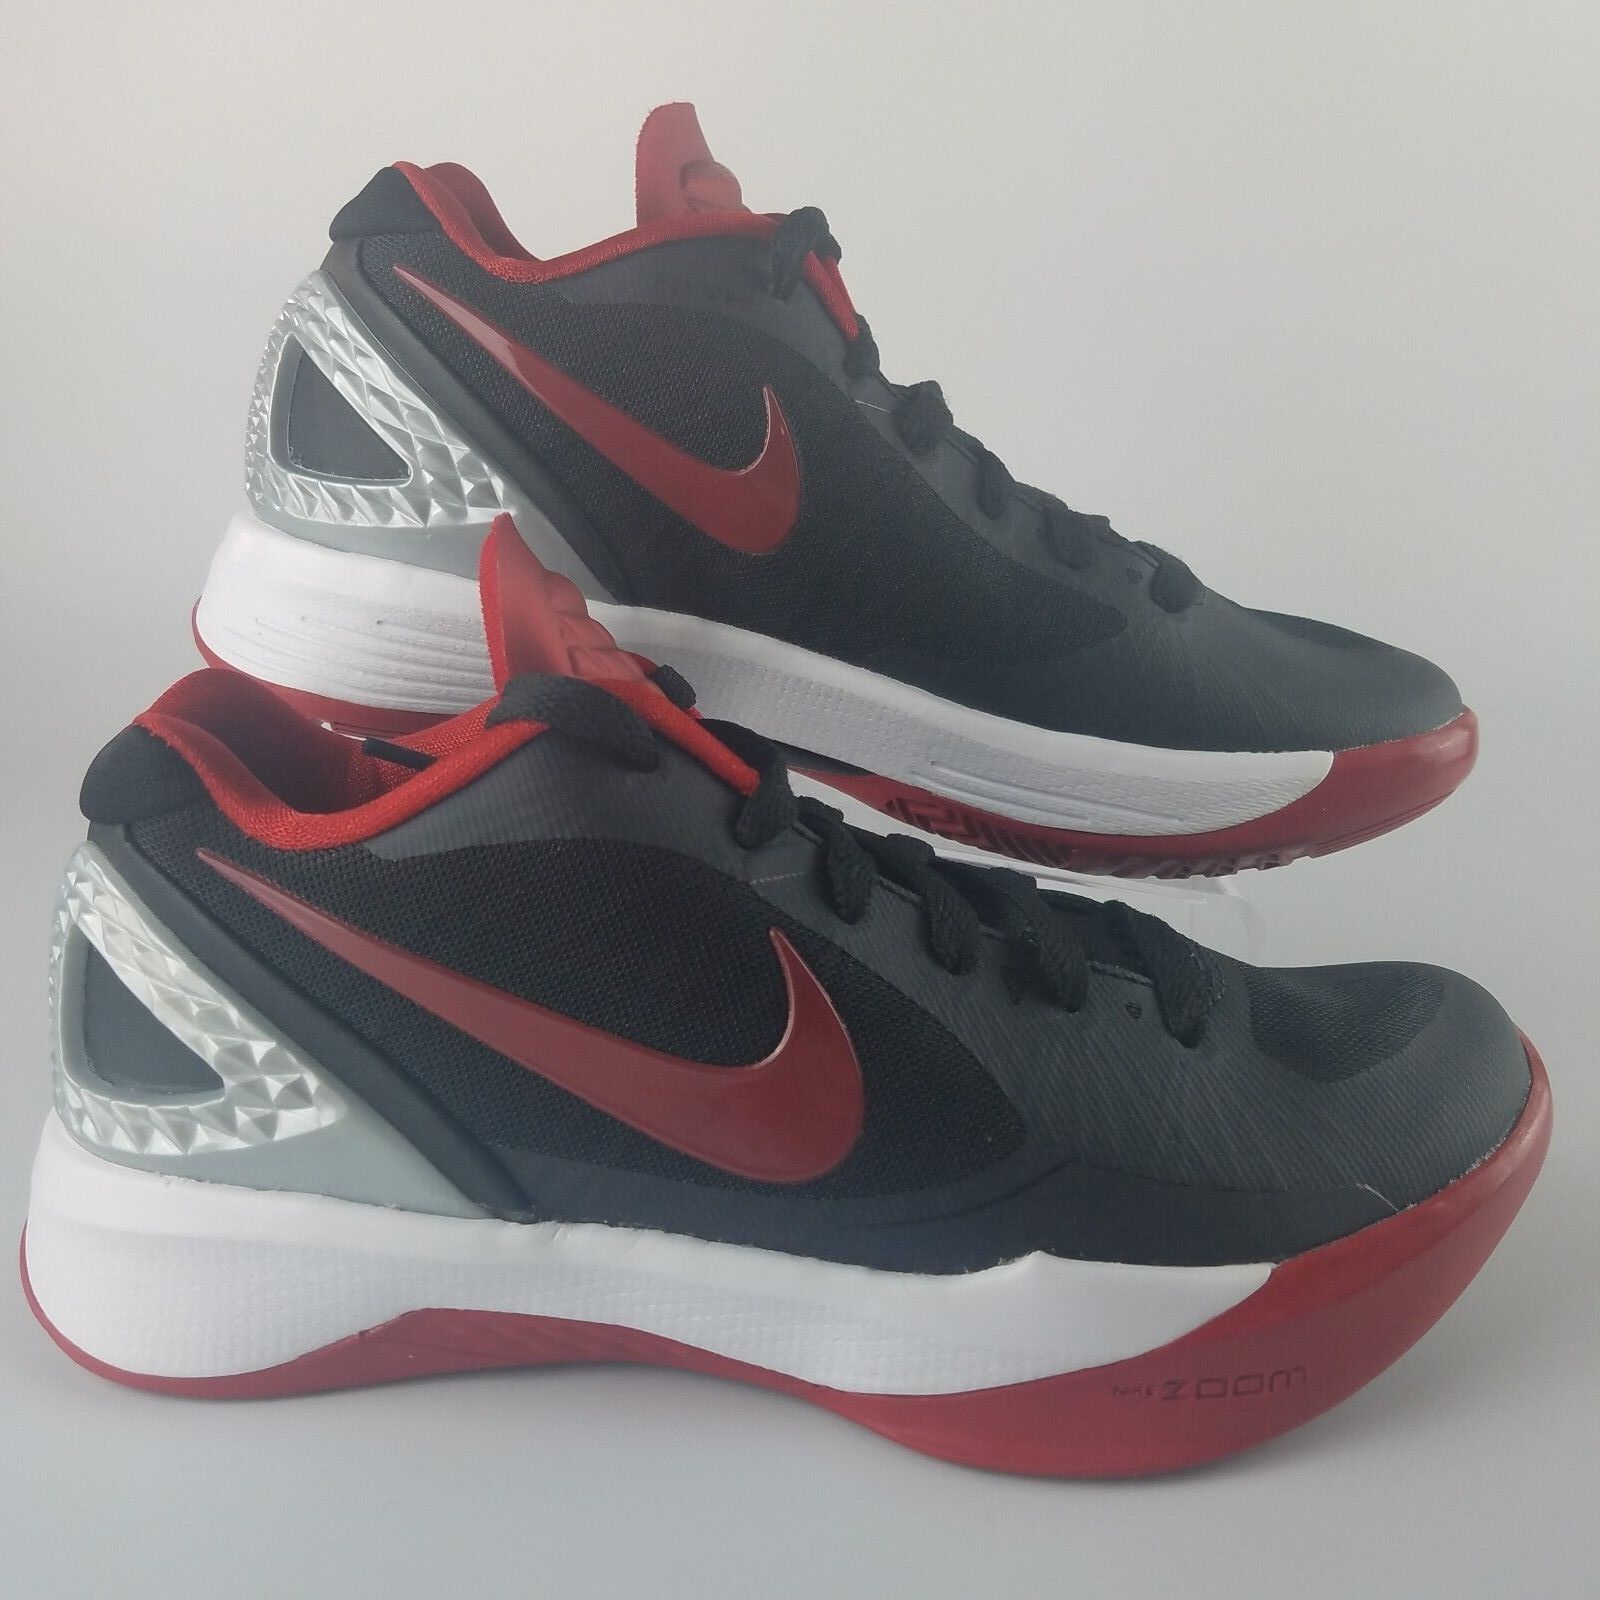 Nike Zoom Hyperspike Hyperspike Hyperspike Volleyball Shoes Womens Size 5.5 Black Red White 585763-061 c2e0da